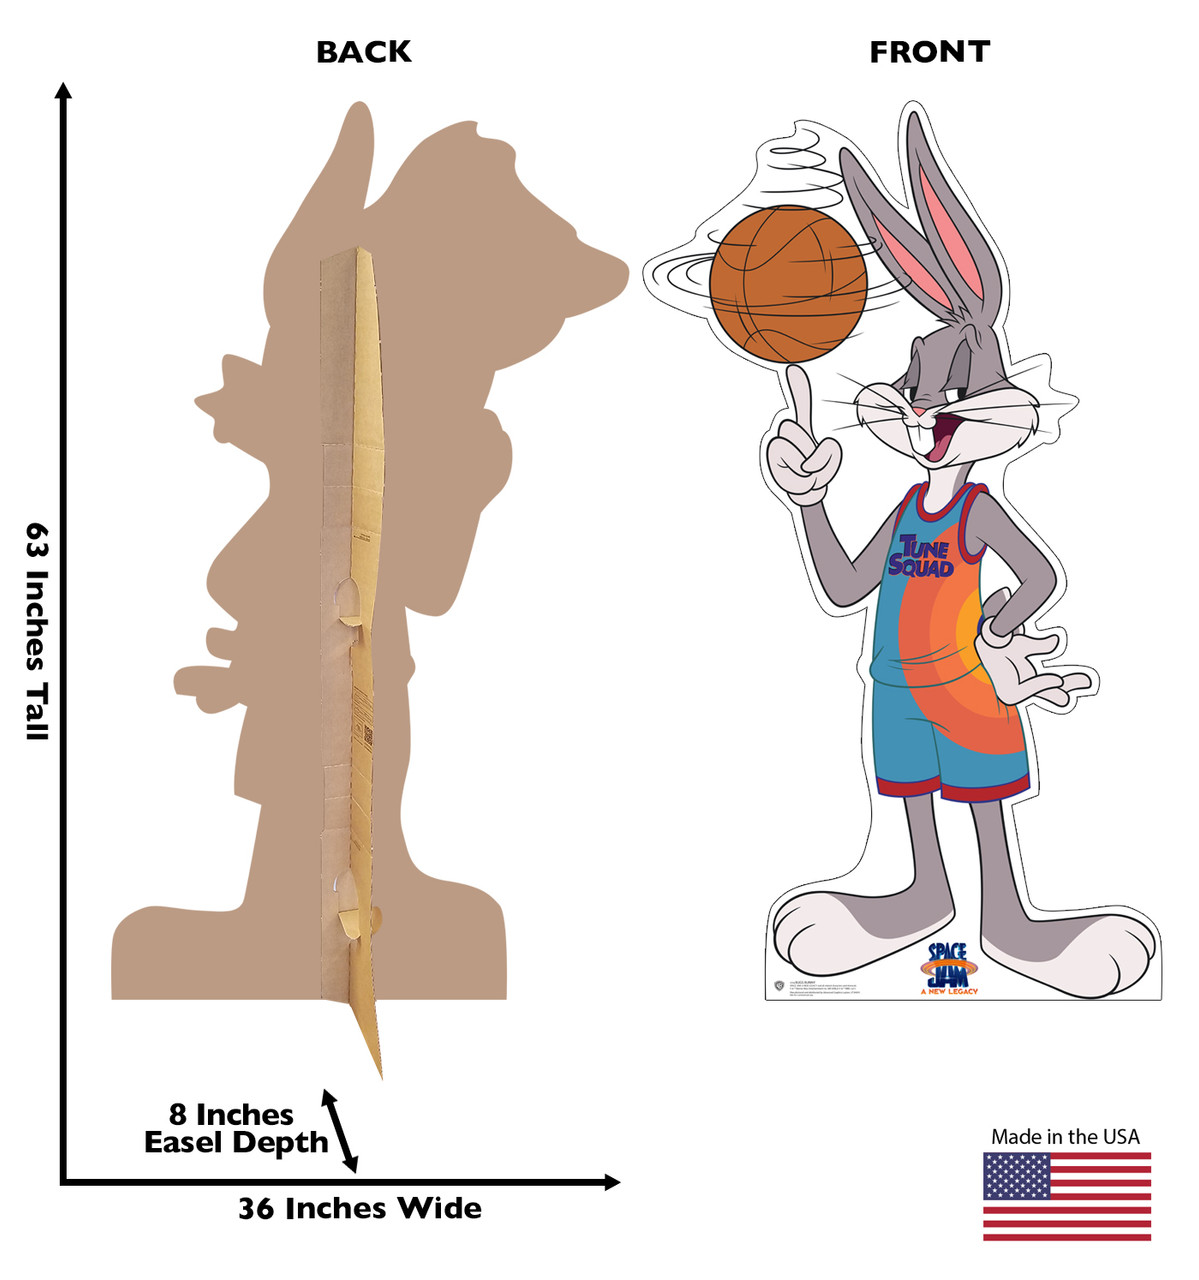 Life-size cardboard standee of Bugs Bunny from Space Jam A New Legacy with front and back dimensions.